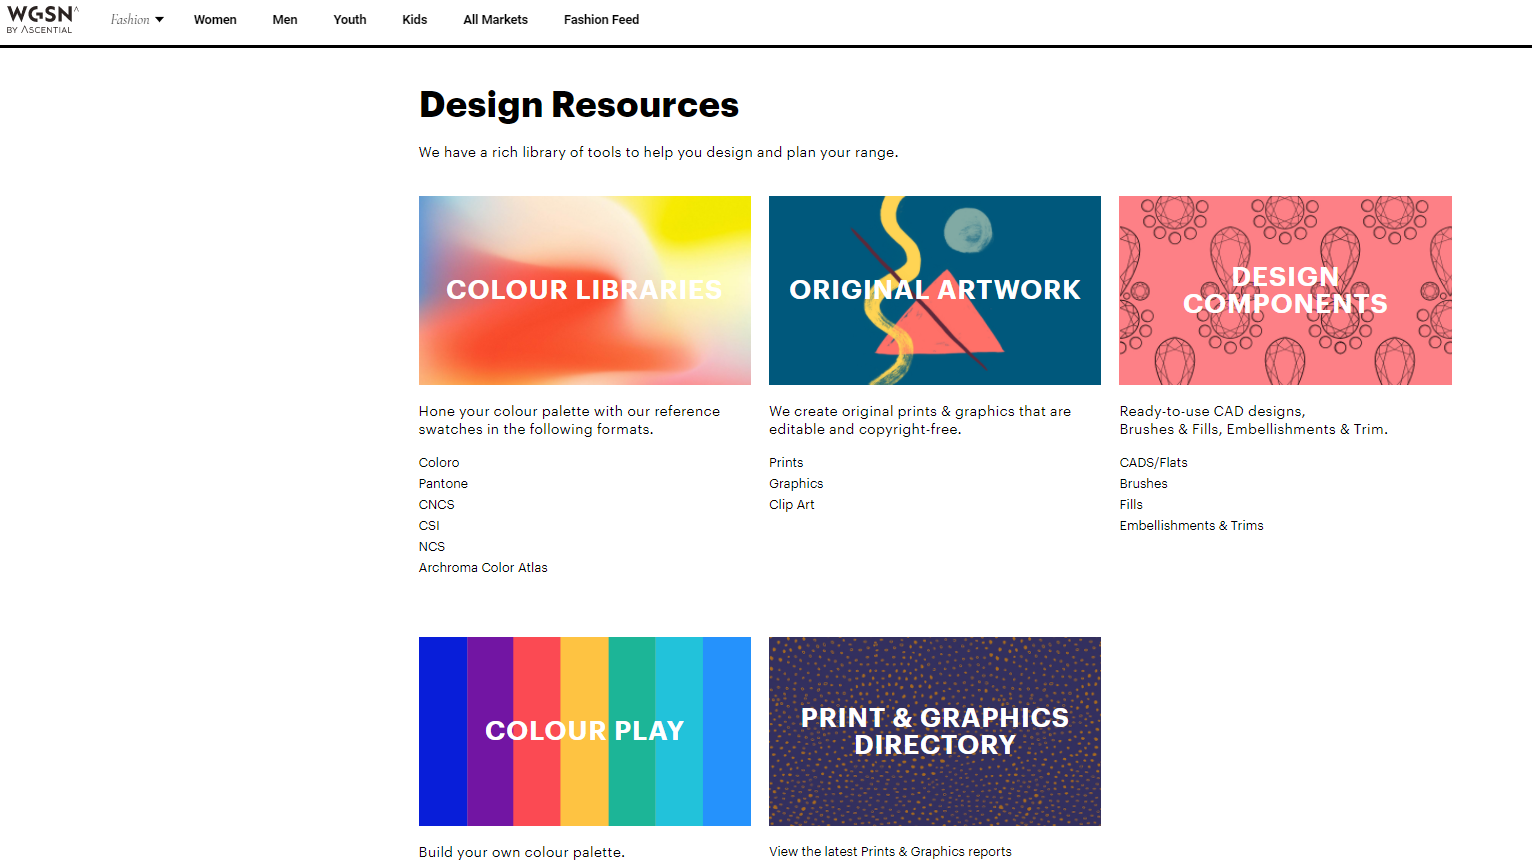 page from WGSN design library menu showing colour library, artwork, design components, and graphics directory